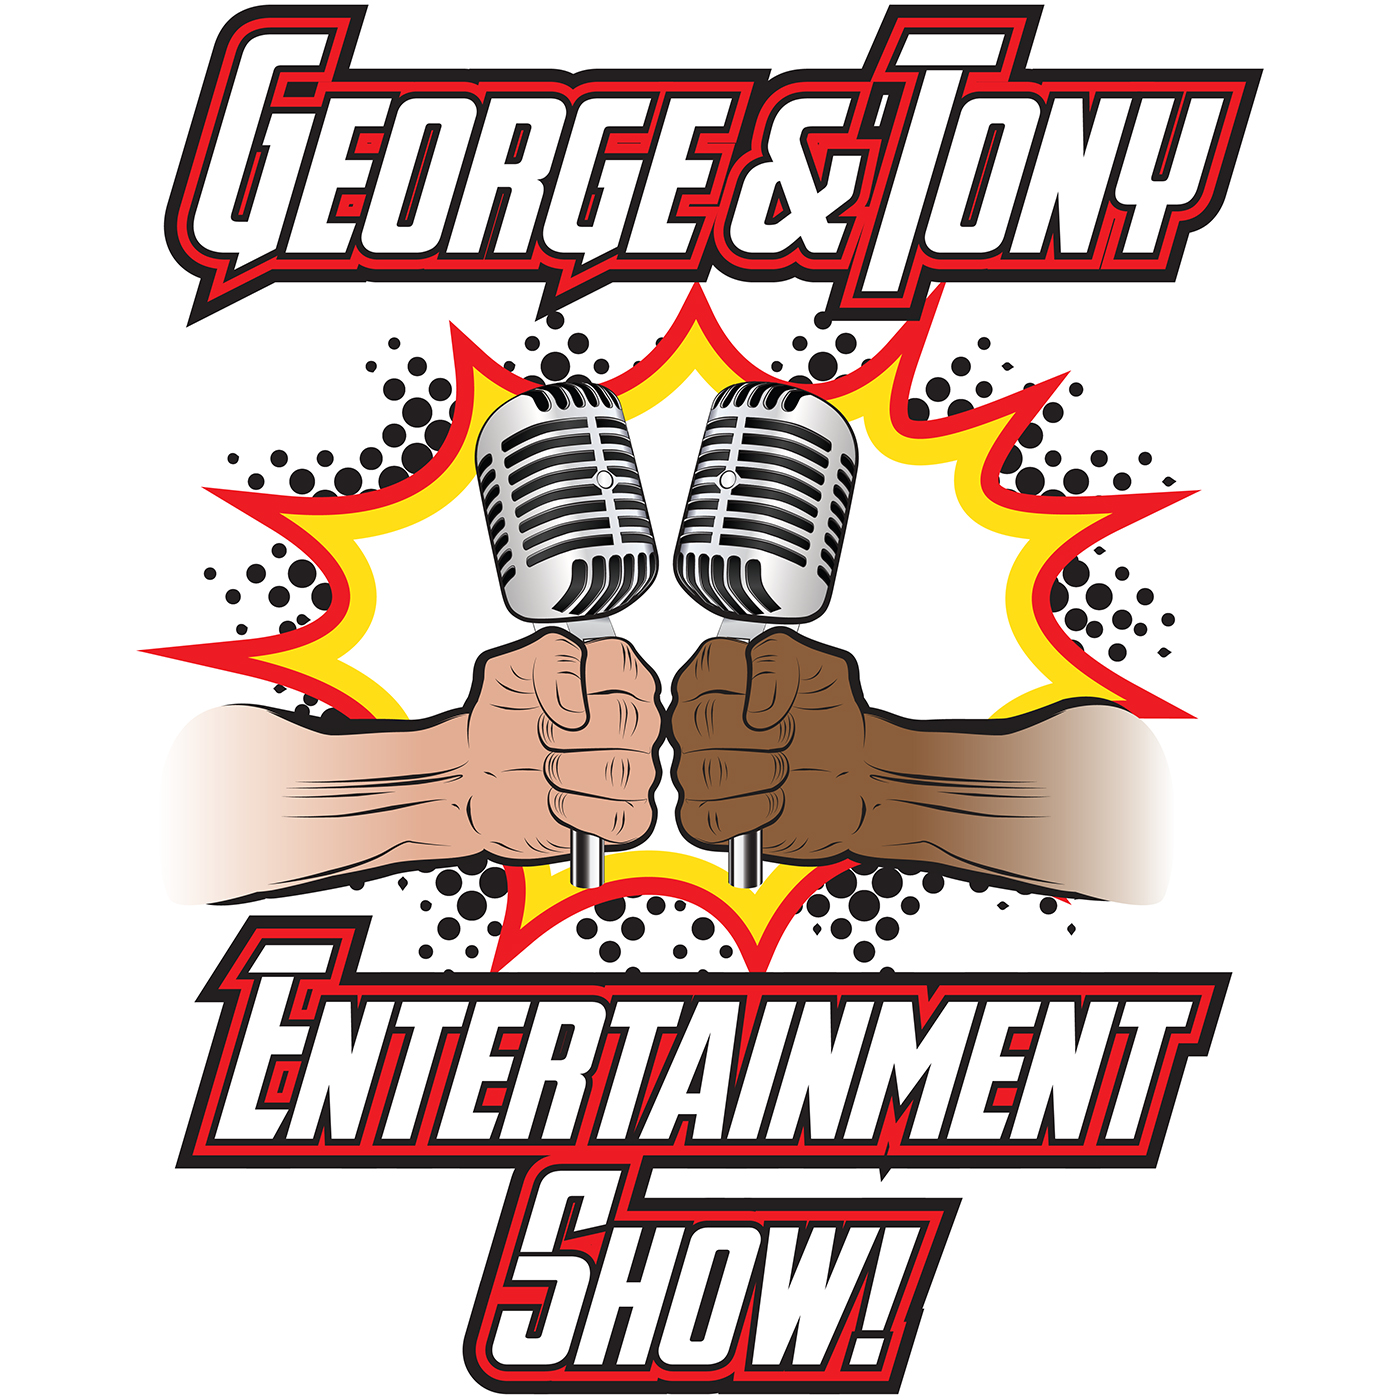 George and Tony Entertainment Show #147